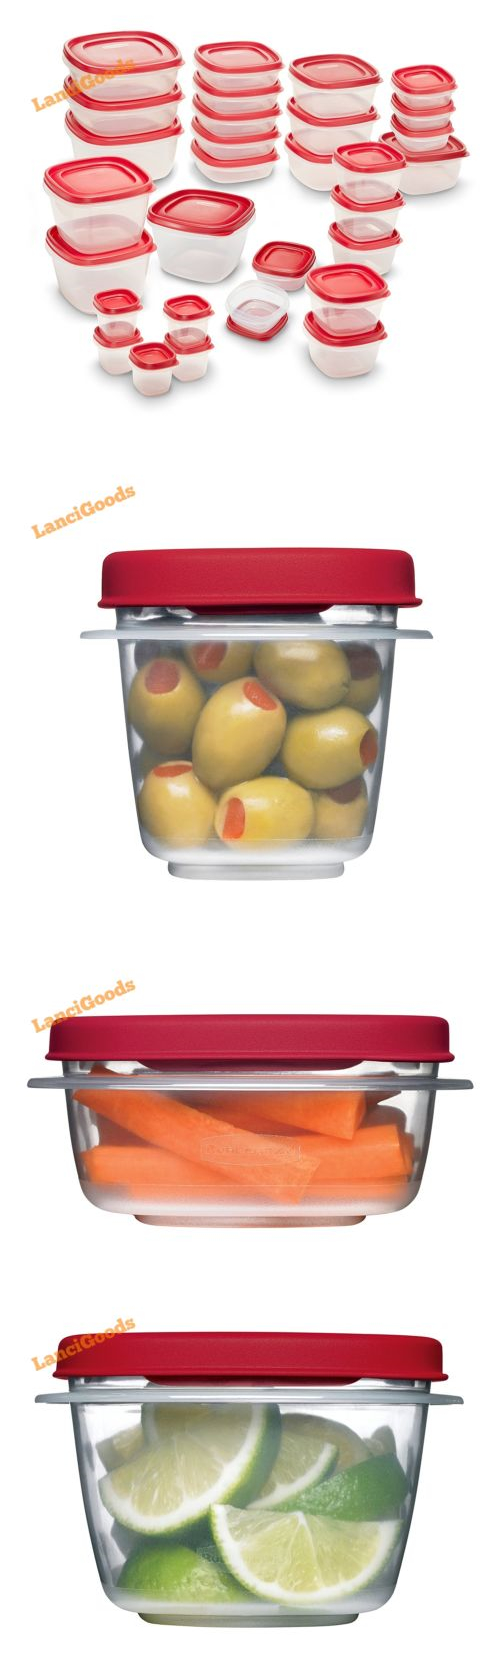 Rubbermaid Brilliance Food Storage Container Set 22 Piece Clear Magnificent Food Storage Containers 20655 Rubbermaid Easy Find Lids Food Inspiration